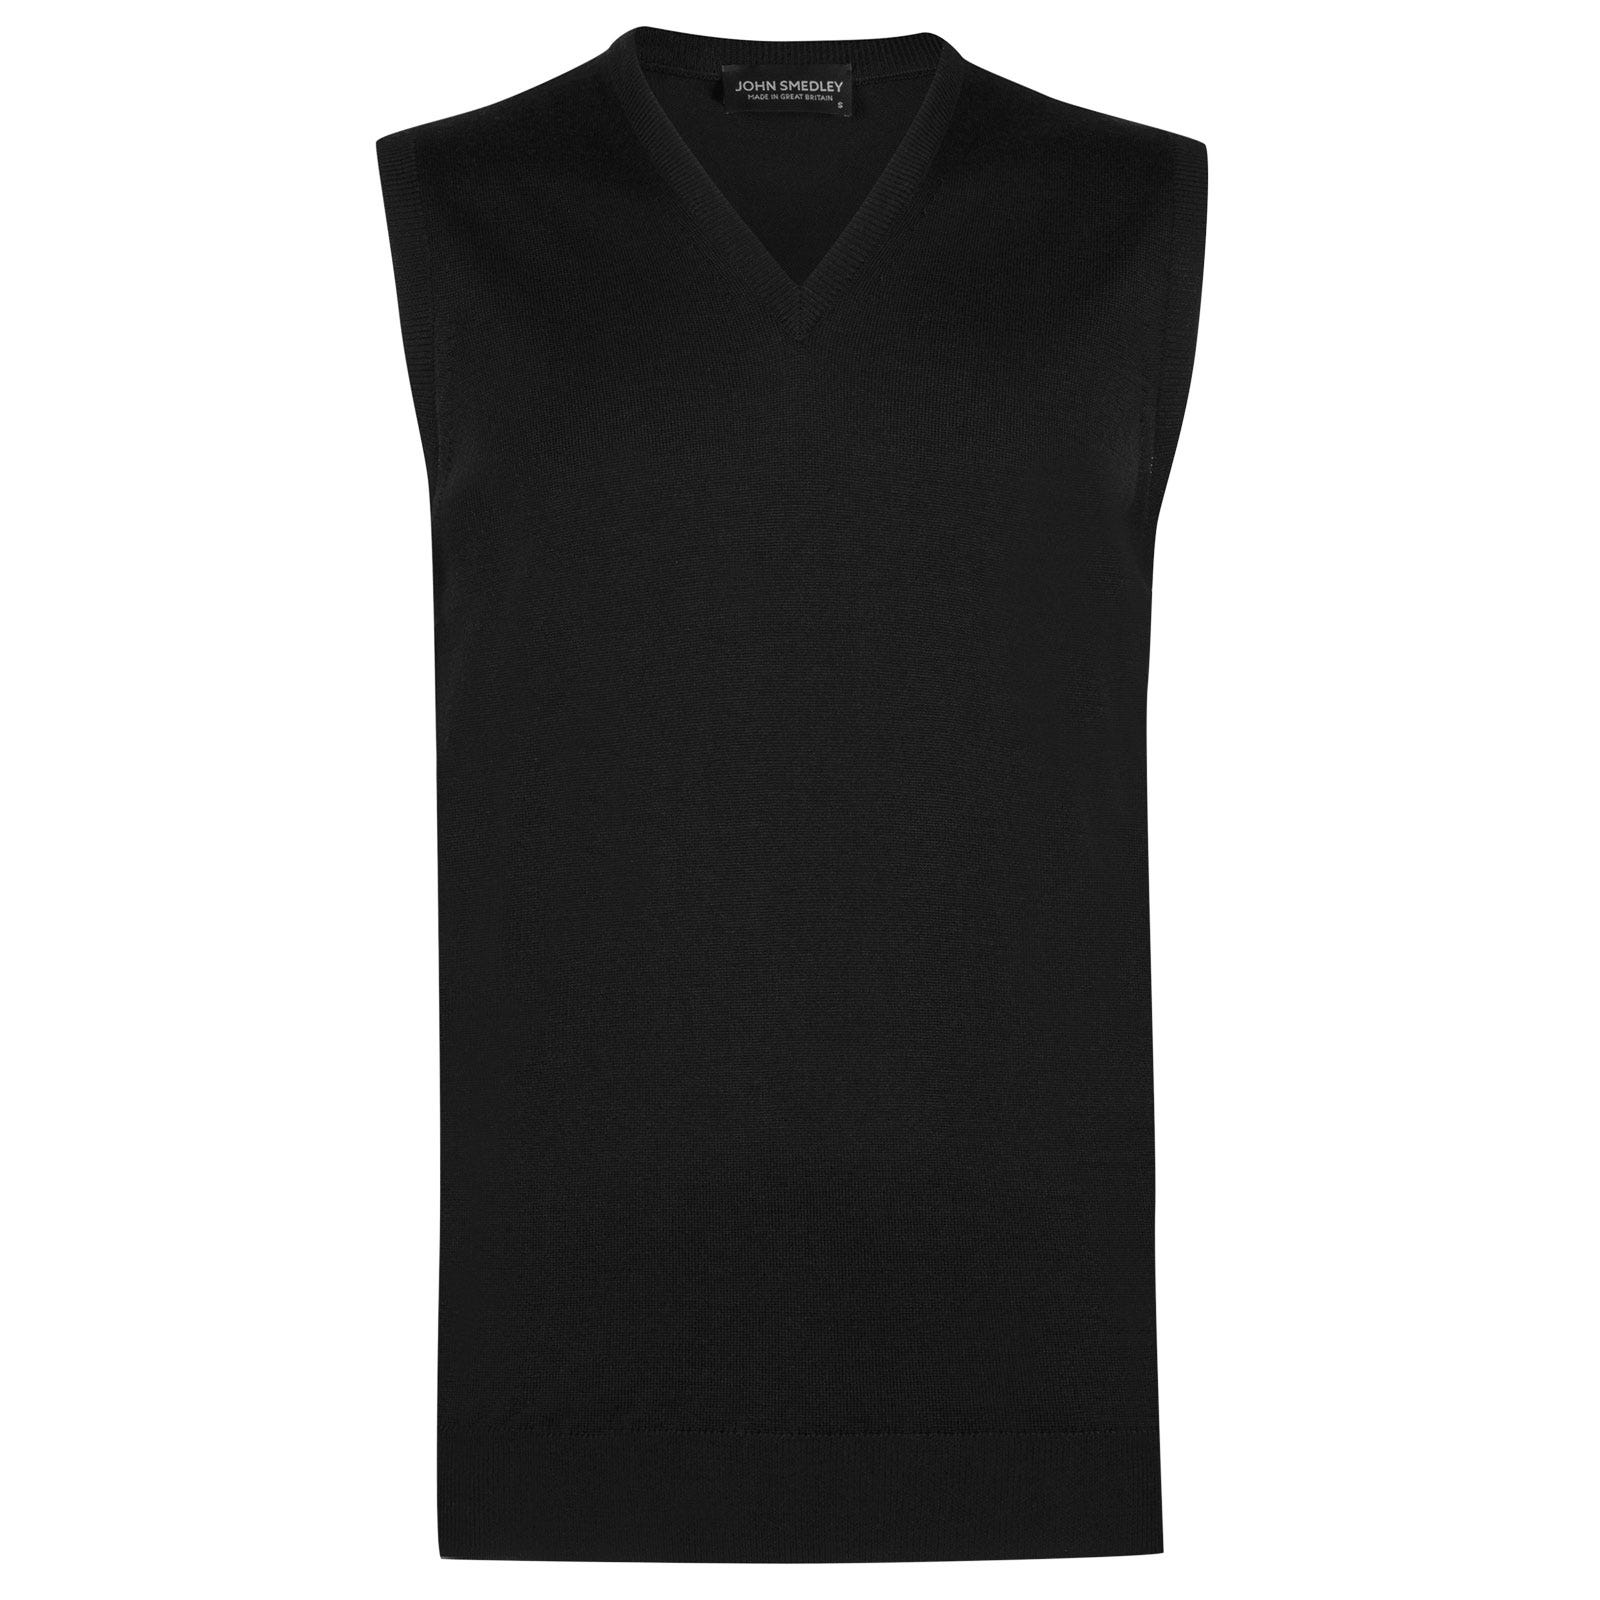 John Smedley hadfield Merino Wool Slipover in Black-M